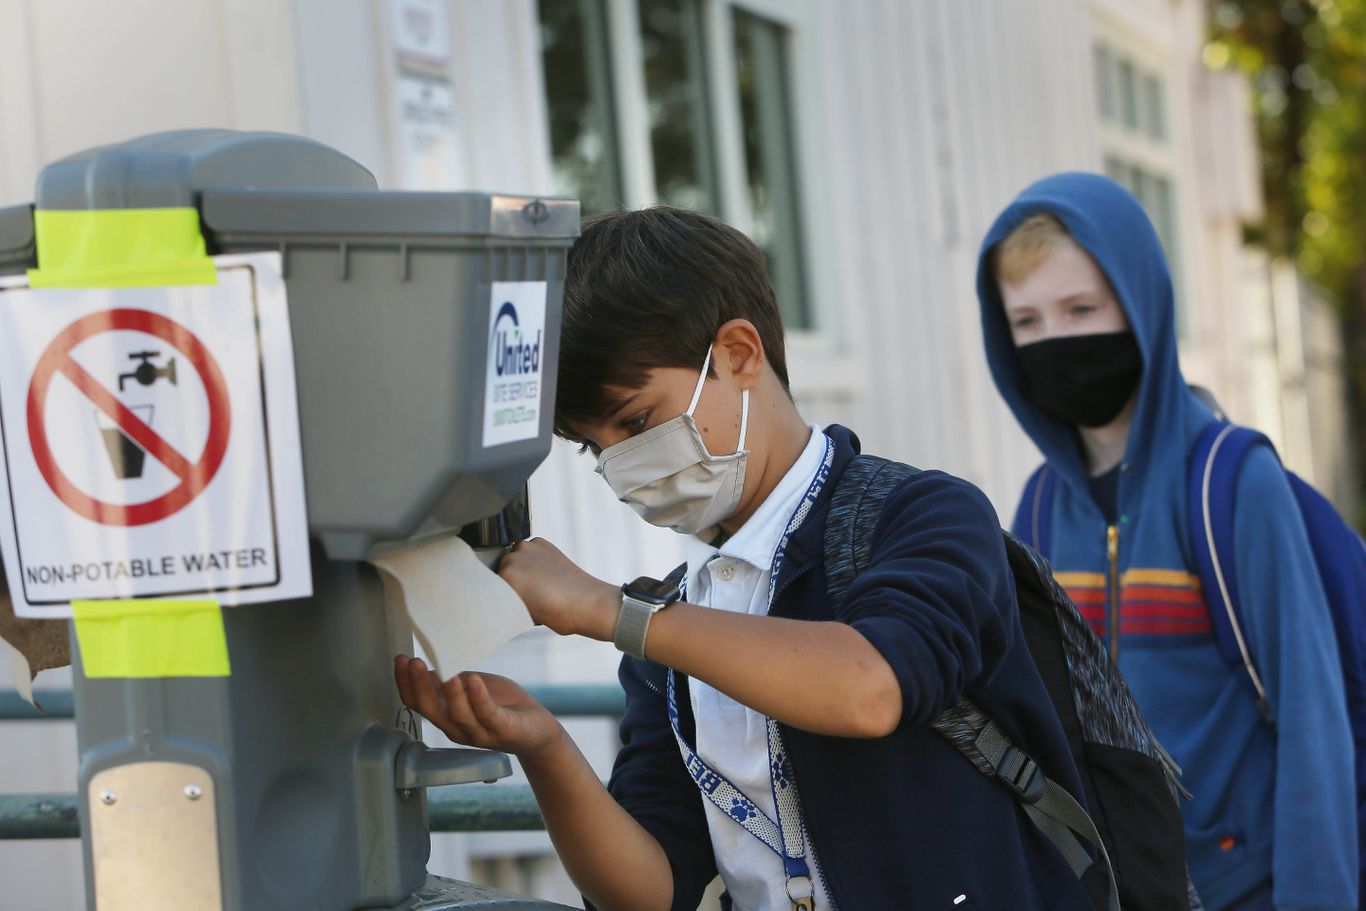 San Francisco public schools likely won't reopen before the end of the year